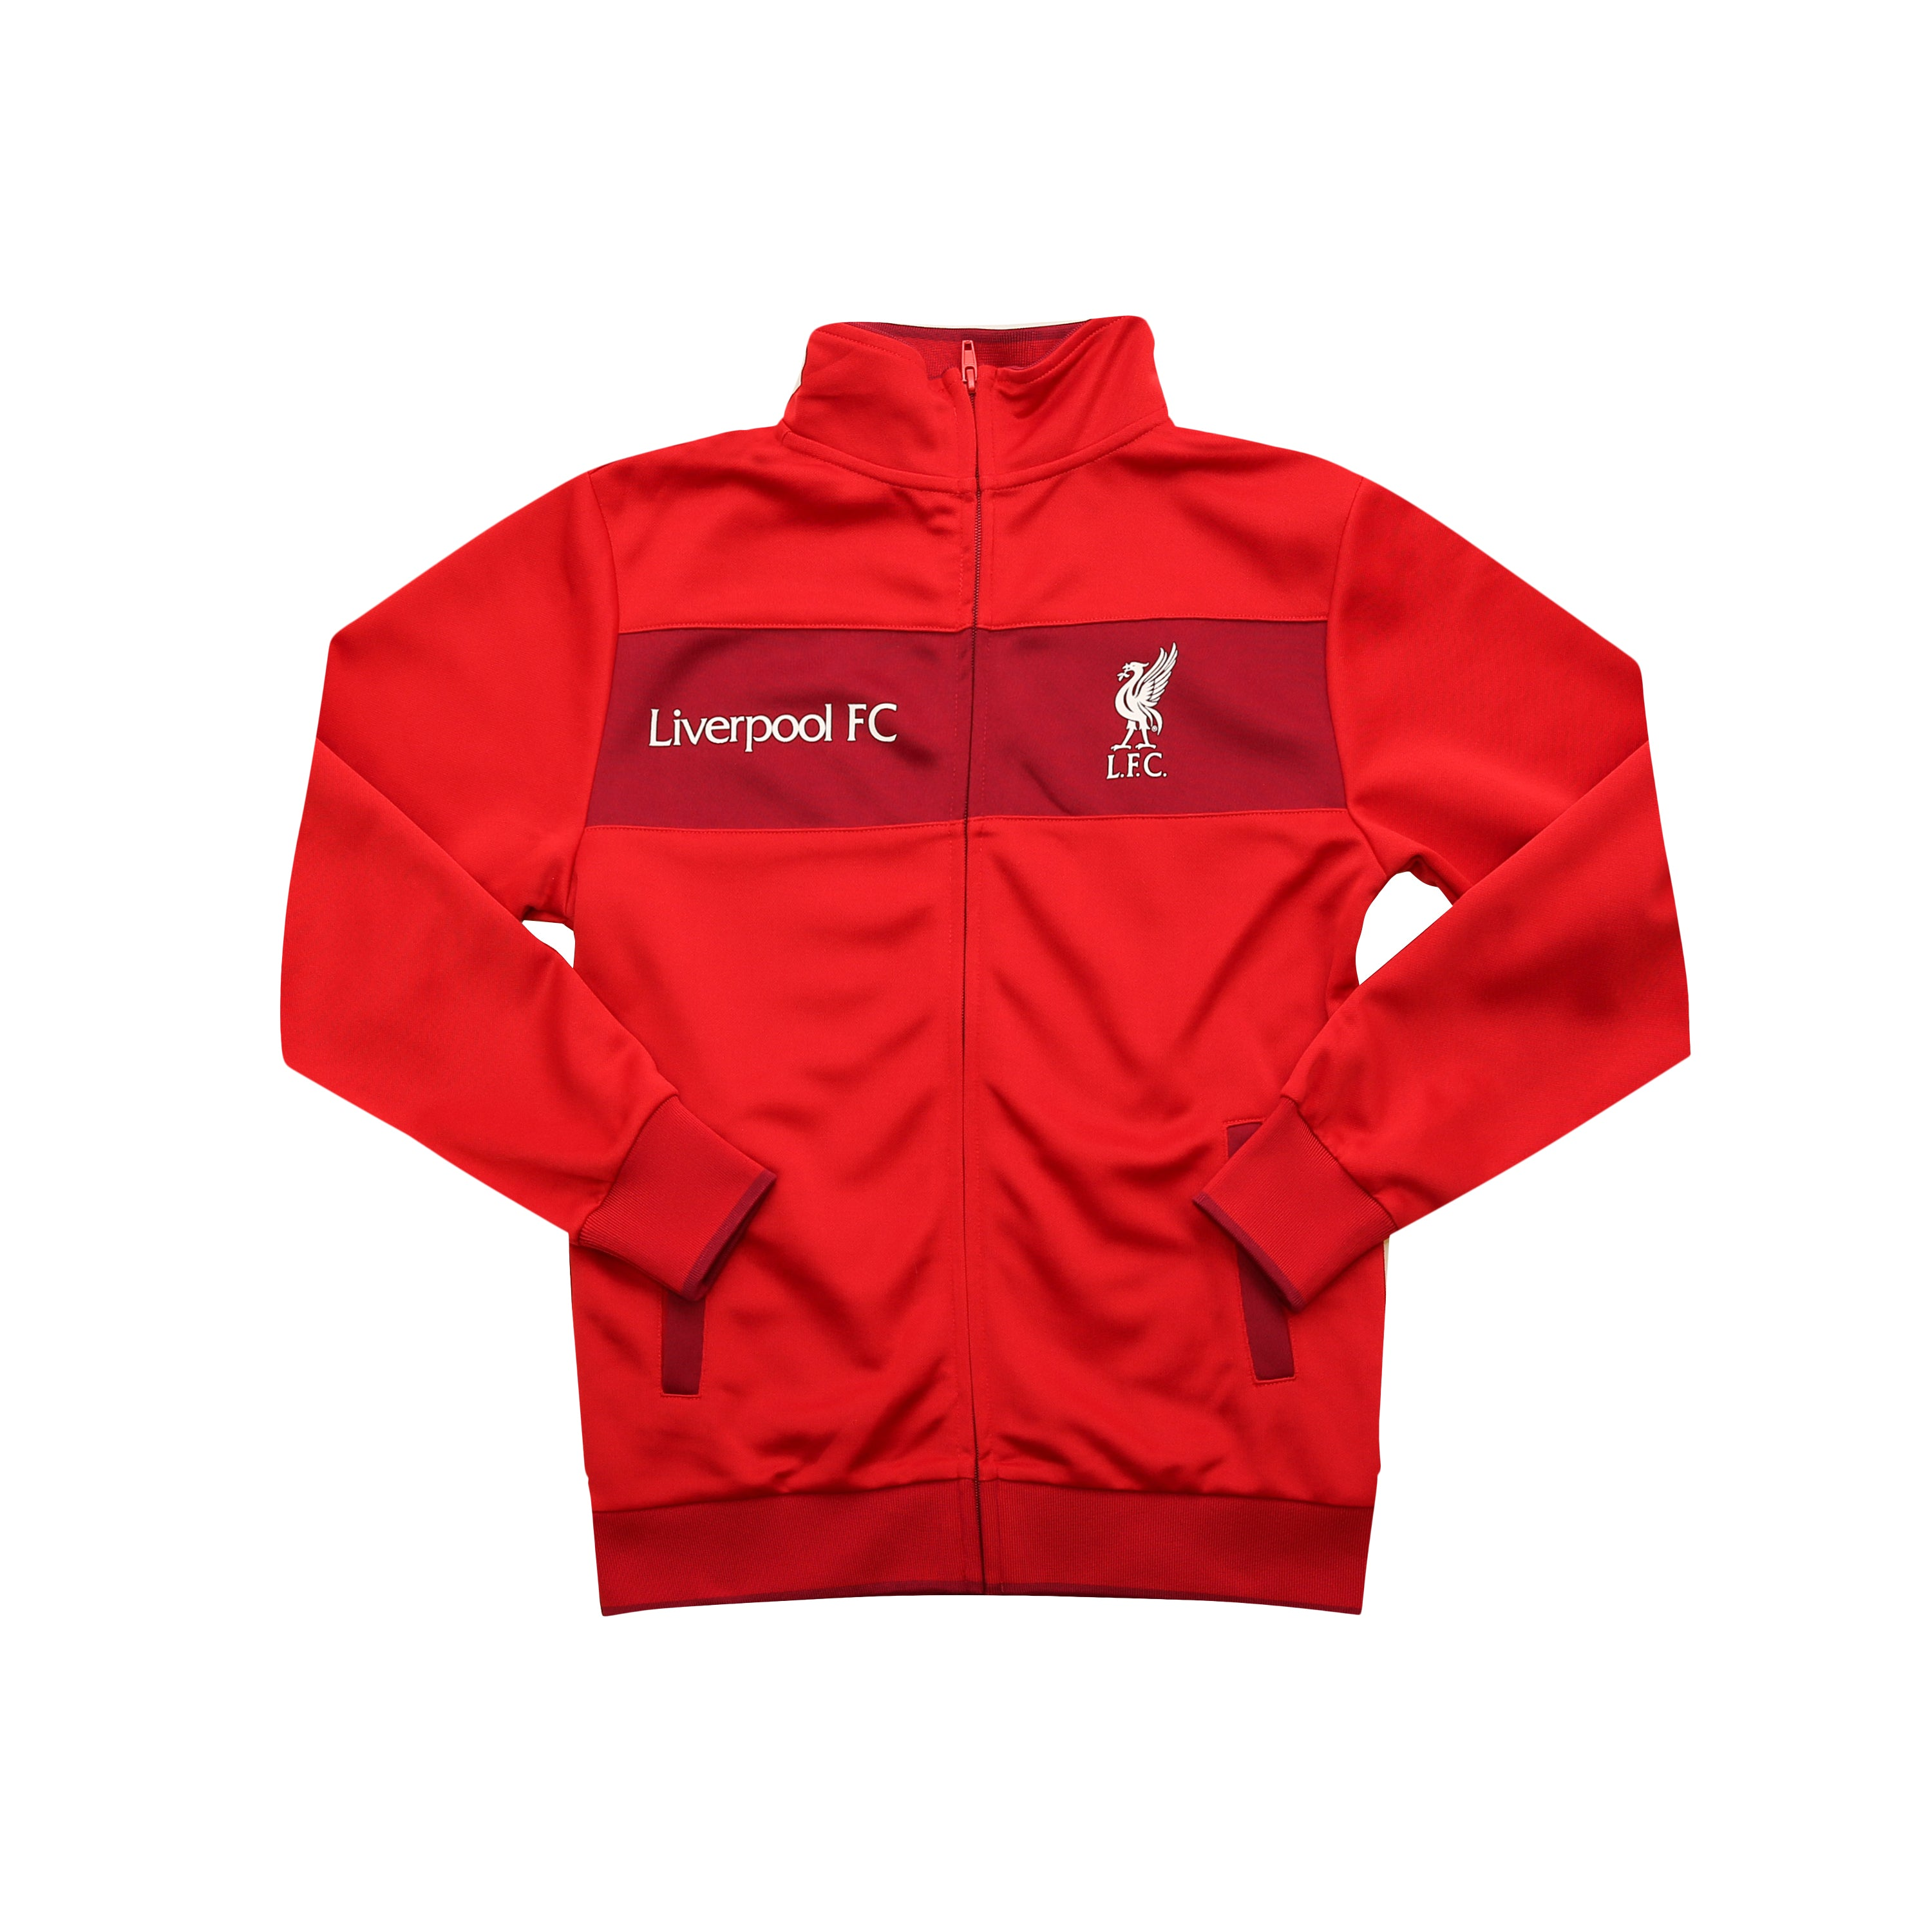 Liverpool FC licensed youth track jacket